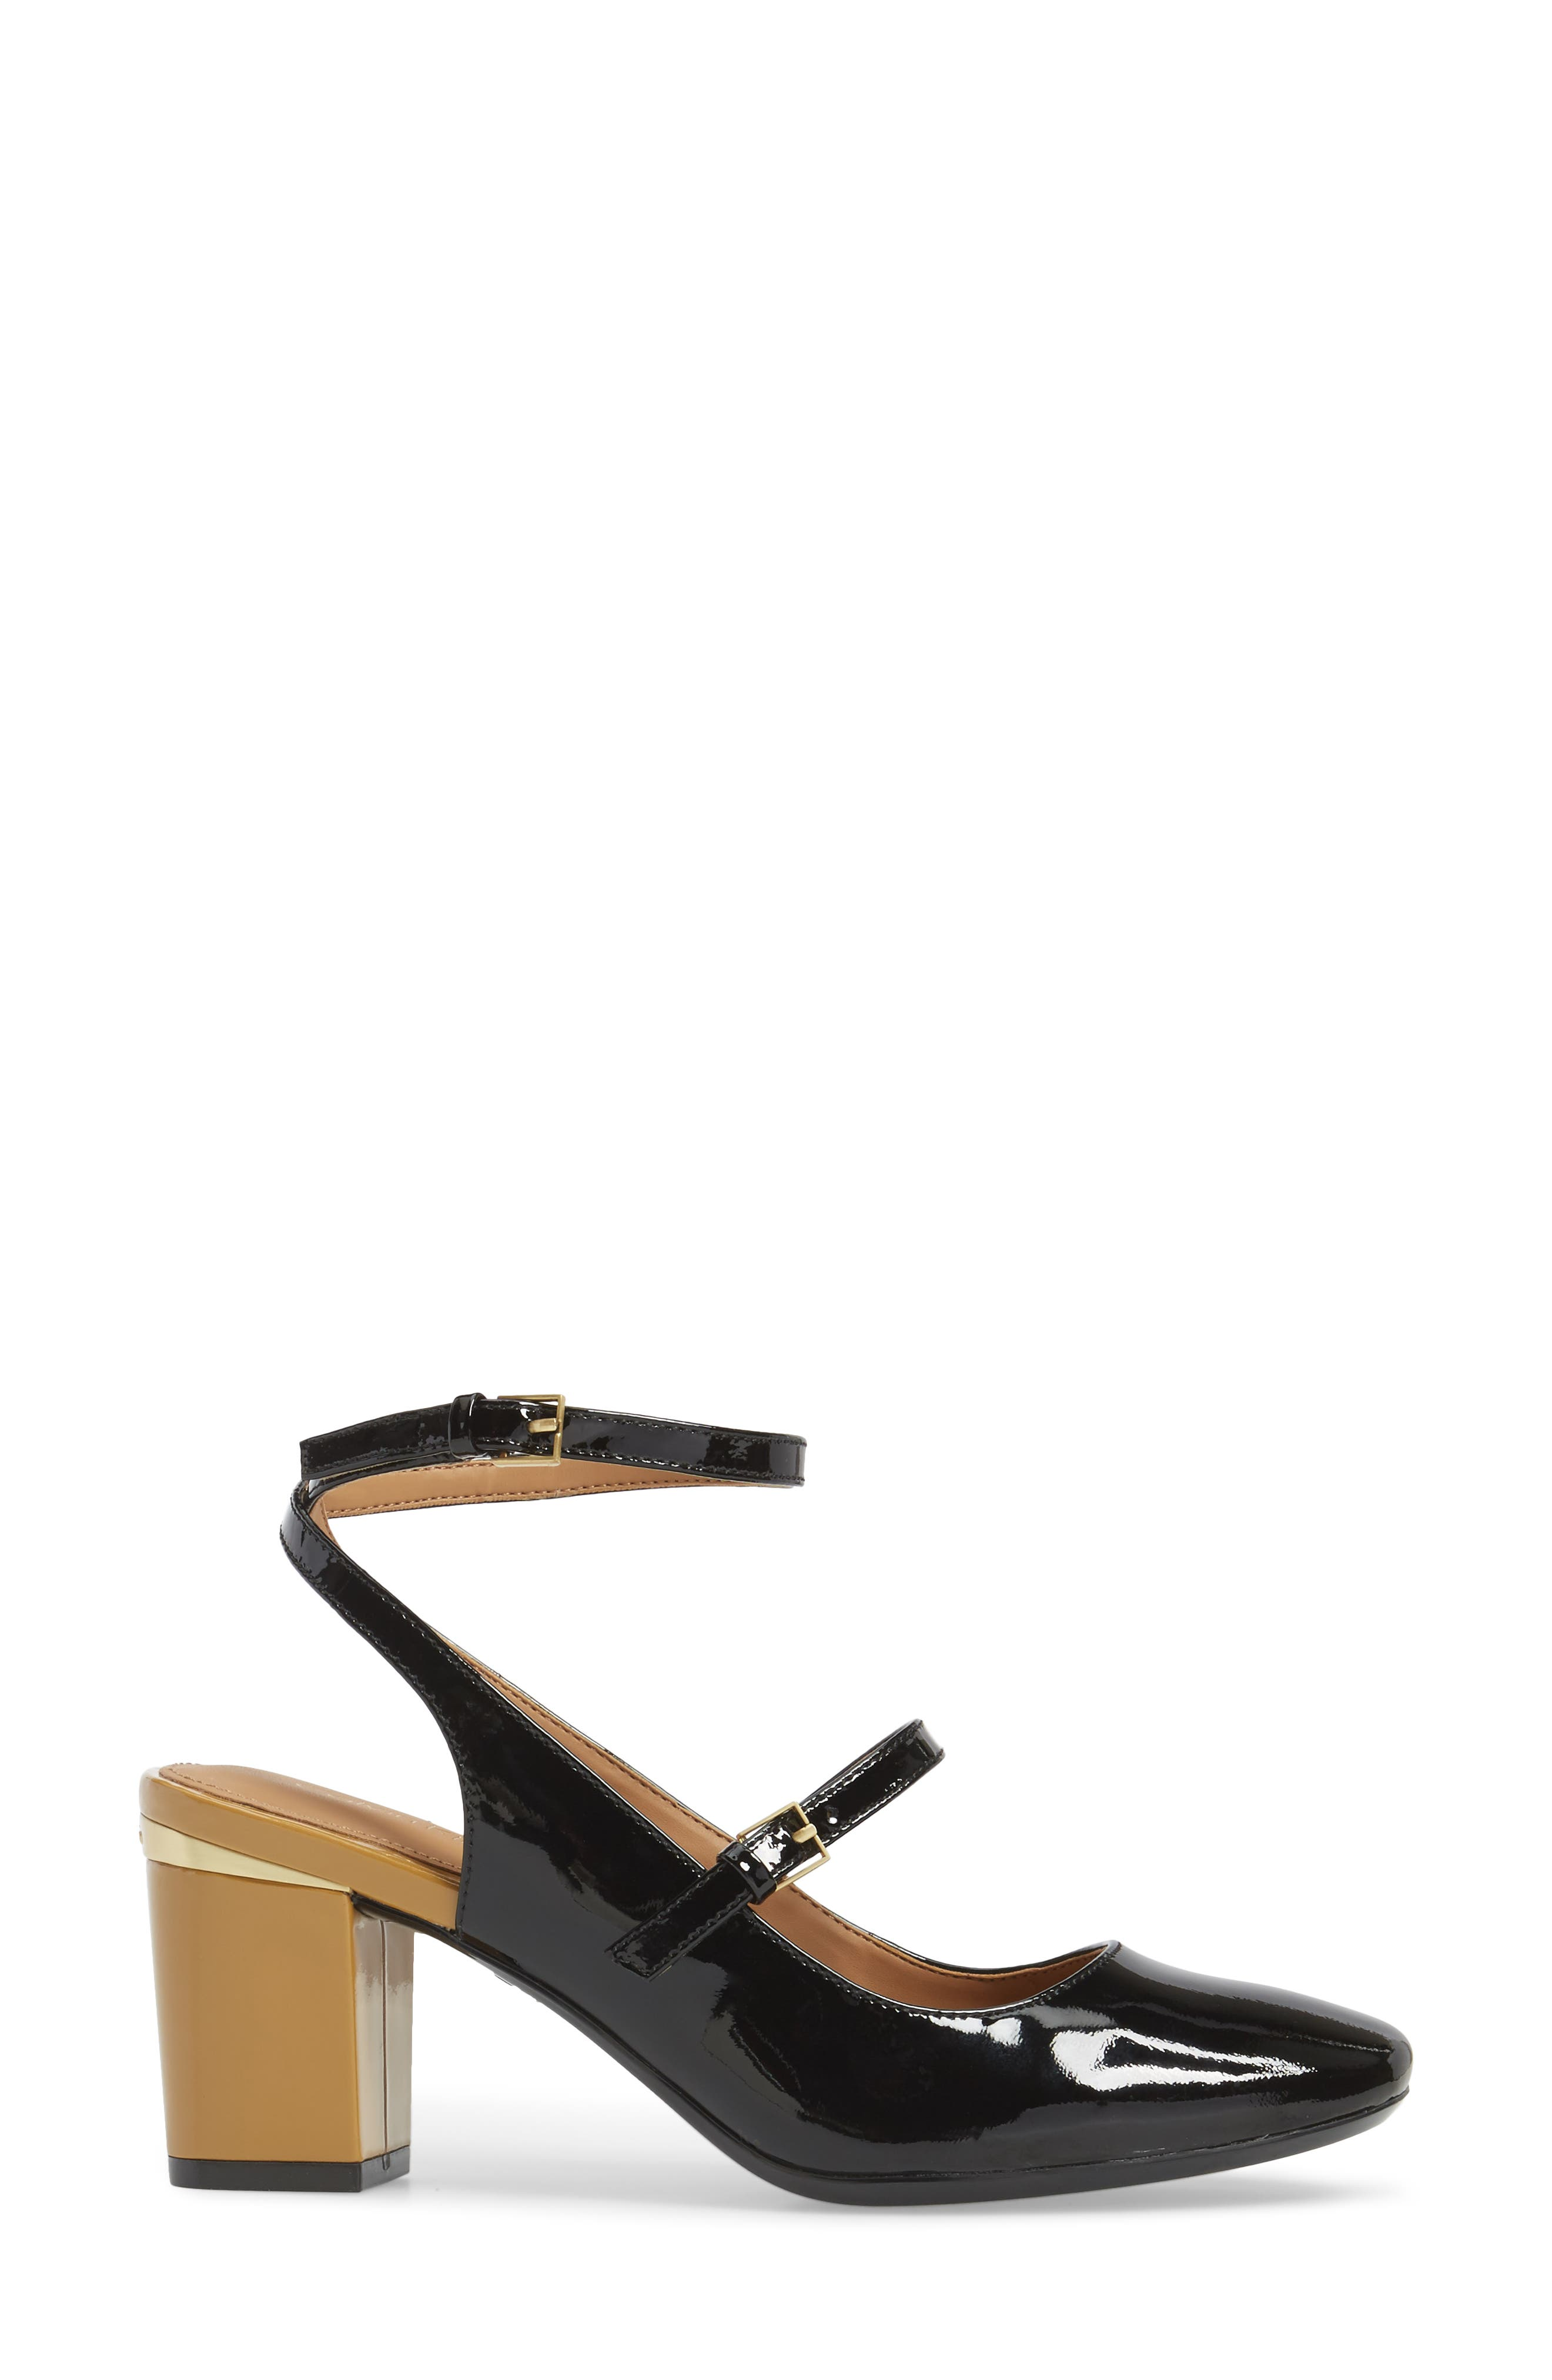 Cleary Wraparound Mary Jane Pump,                             Alternate thumbnail 3, color,                             001